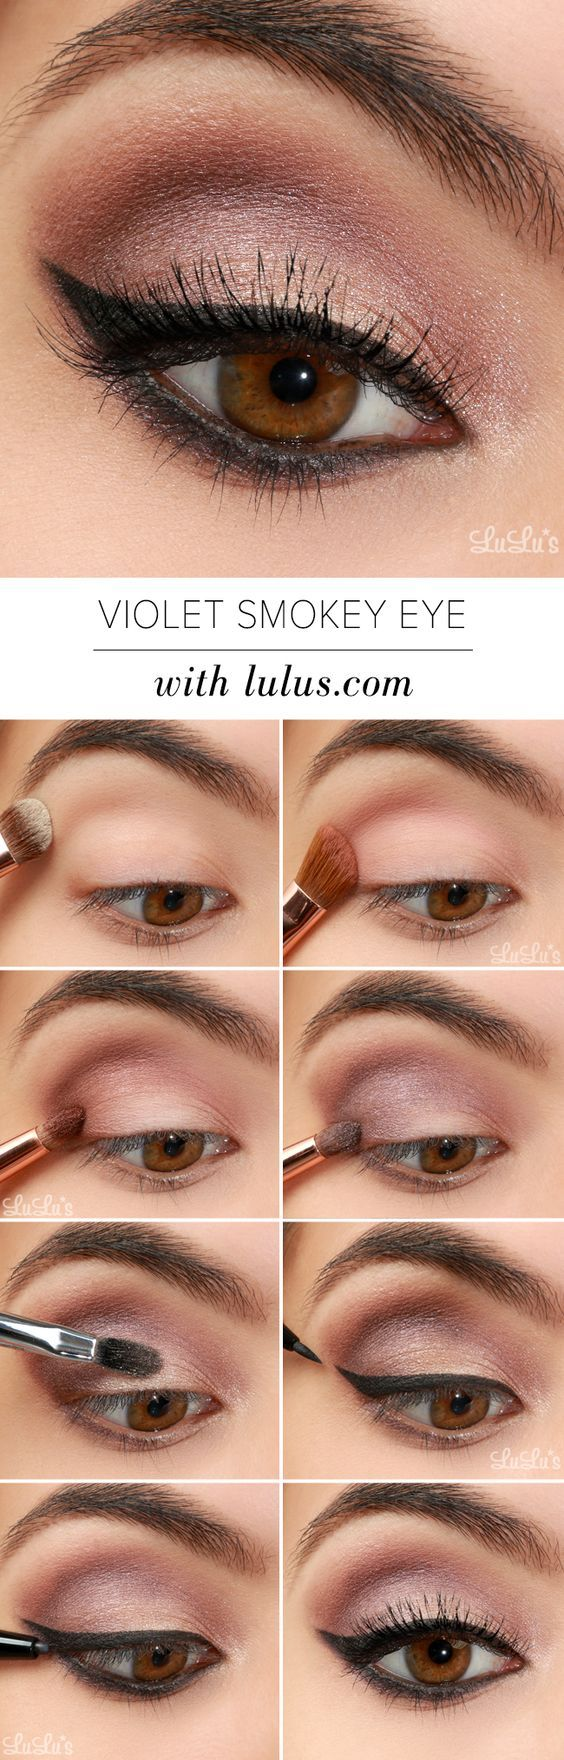 violet-smokey-eye-makeup via